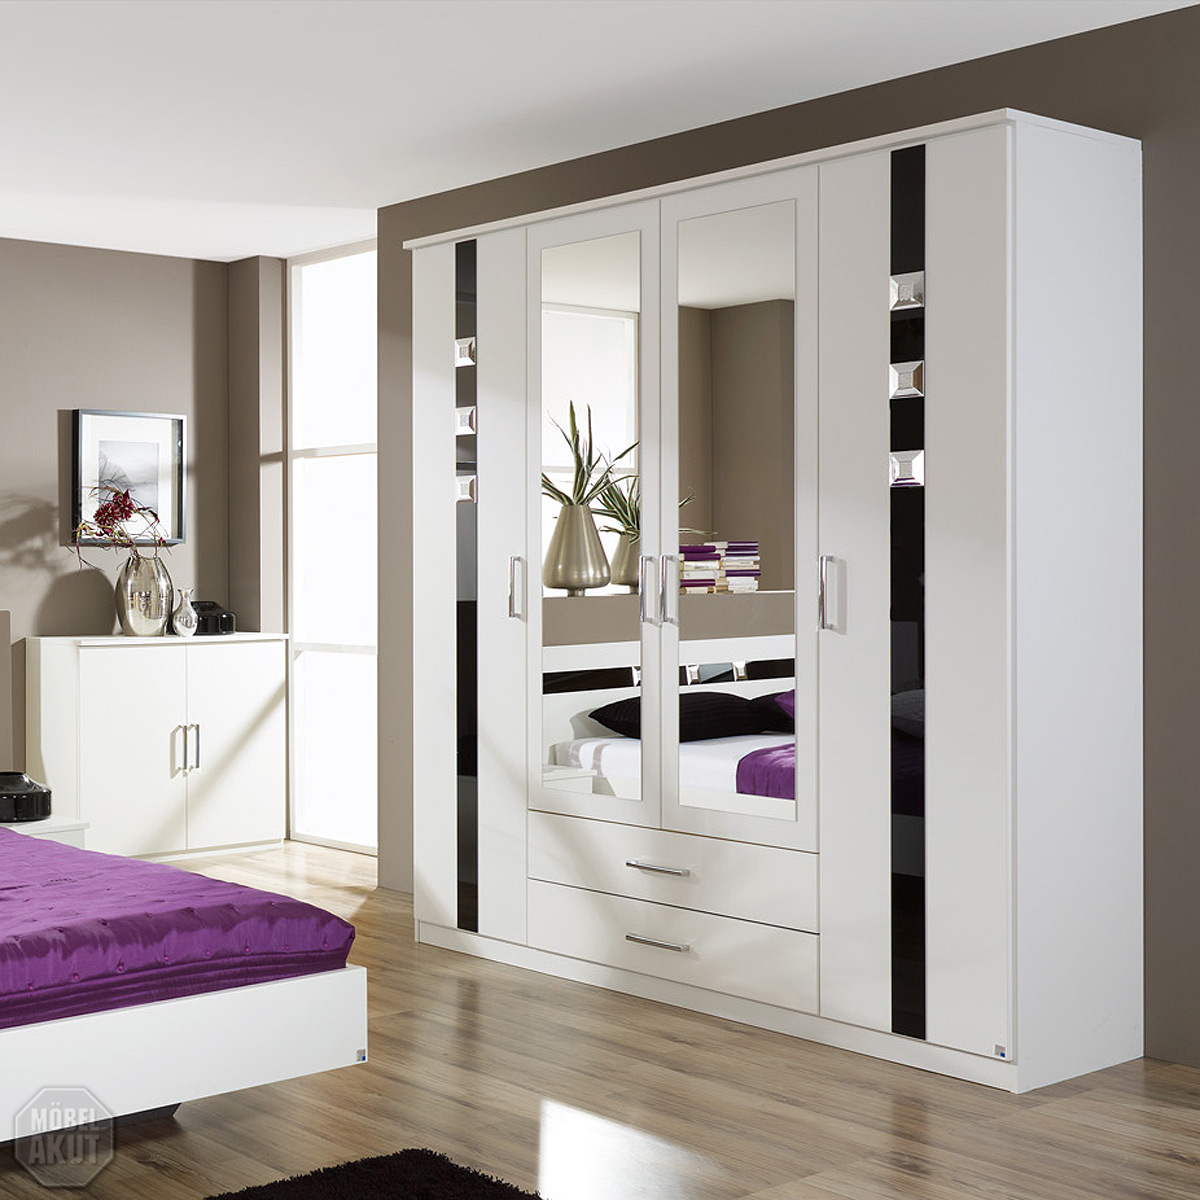 kleiderschrank tours schrank schlafzimmerschrank wei. Black Bedroom Furniture Sets. Home Design Ideas